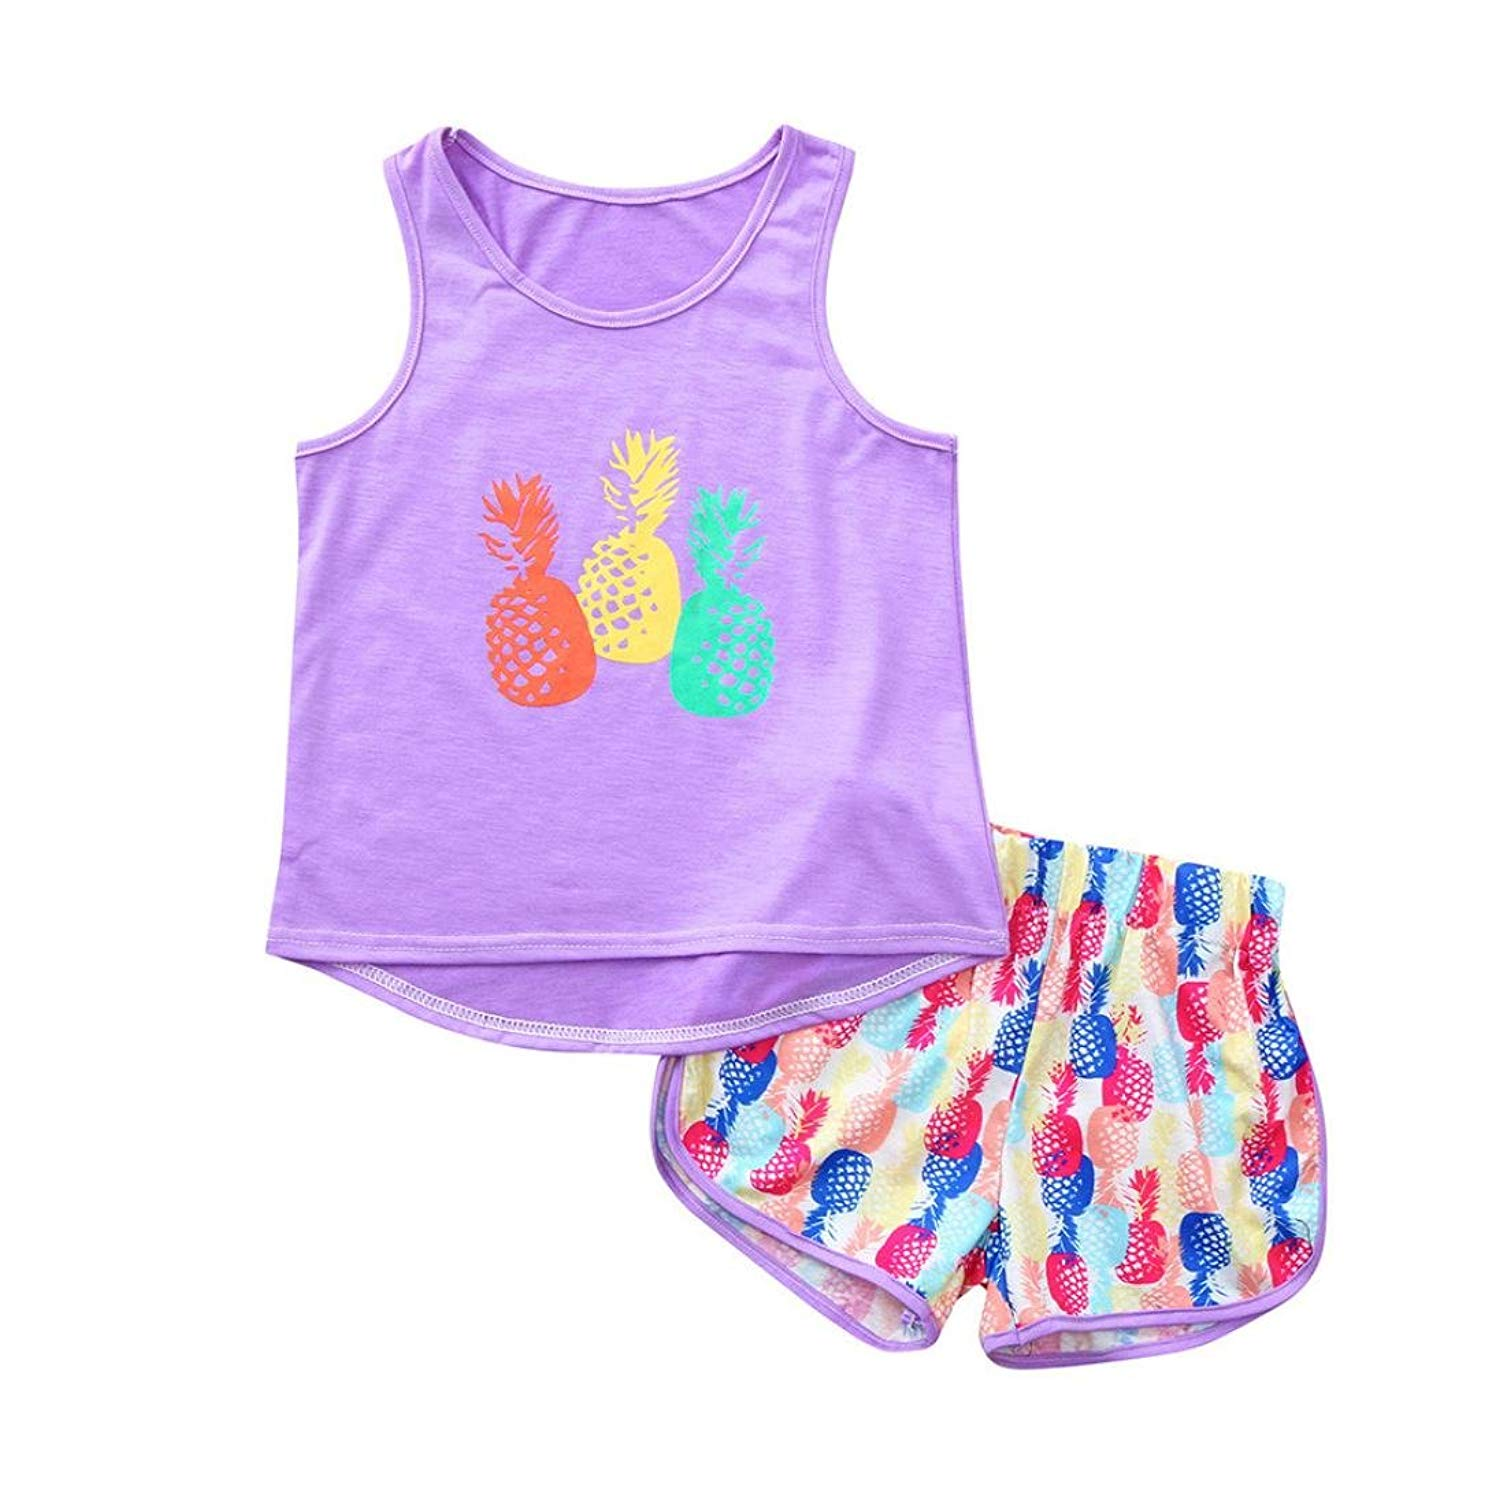 Kehen Kids Toddler Girls Summer Clothes Home Pajamas Pineapple Print Vest Tops T-Shirt Shorts Outfits Set